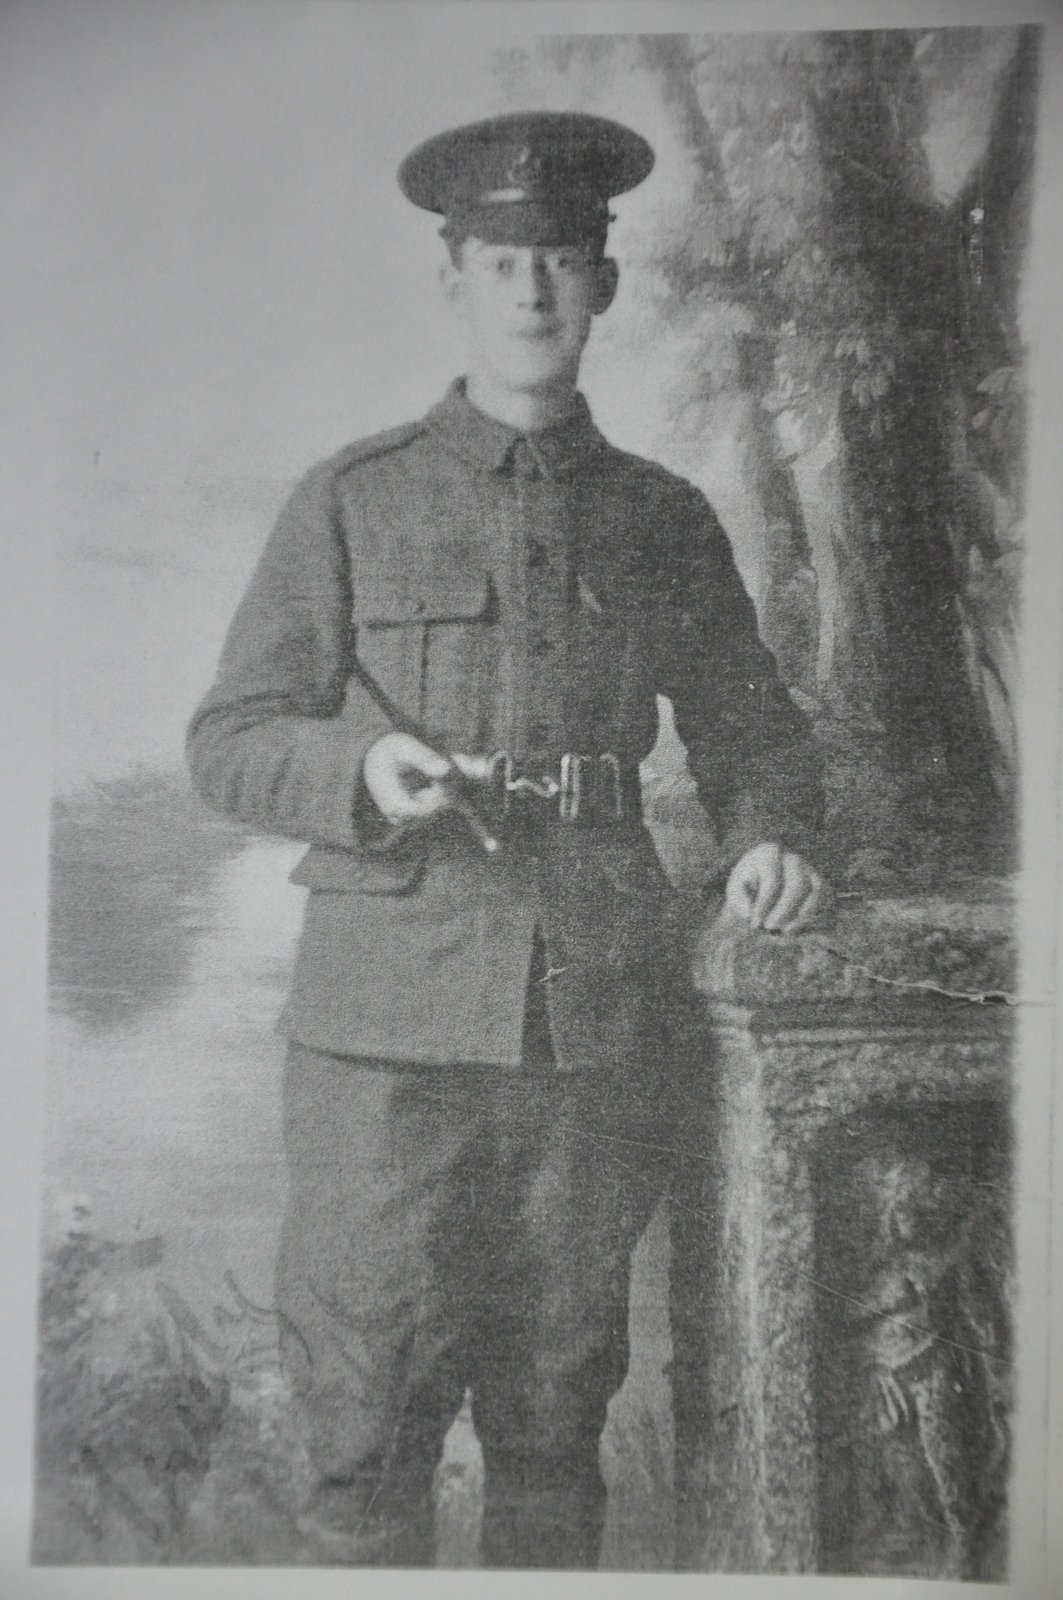 John Stafford, 5th Liverpool Regiment, in uniform, 1915-1916, Liverpool, Europeana 1914-1918 / Joan Almond, CC BY-SA